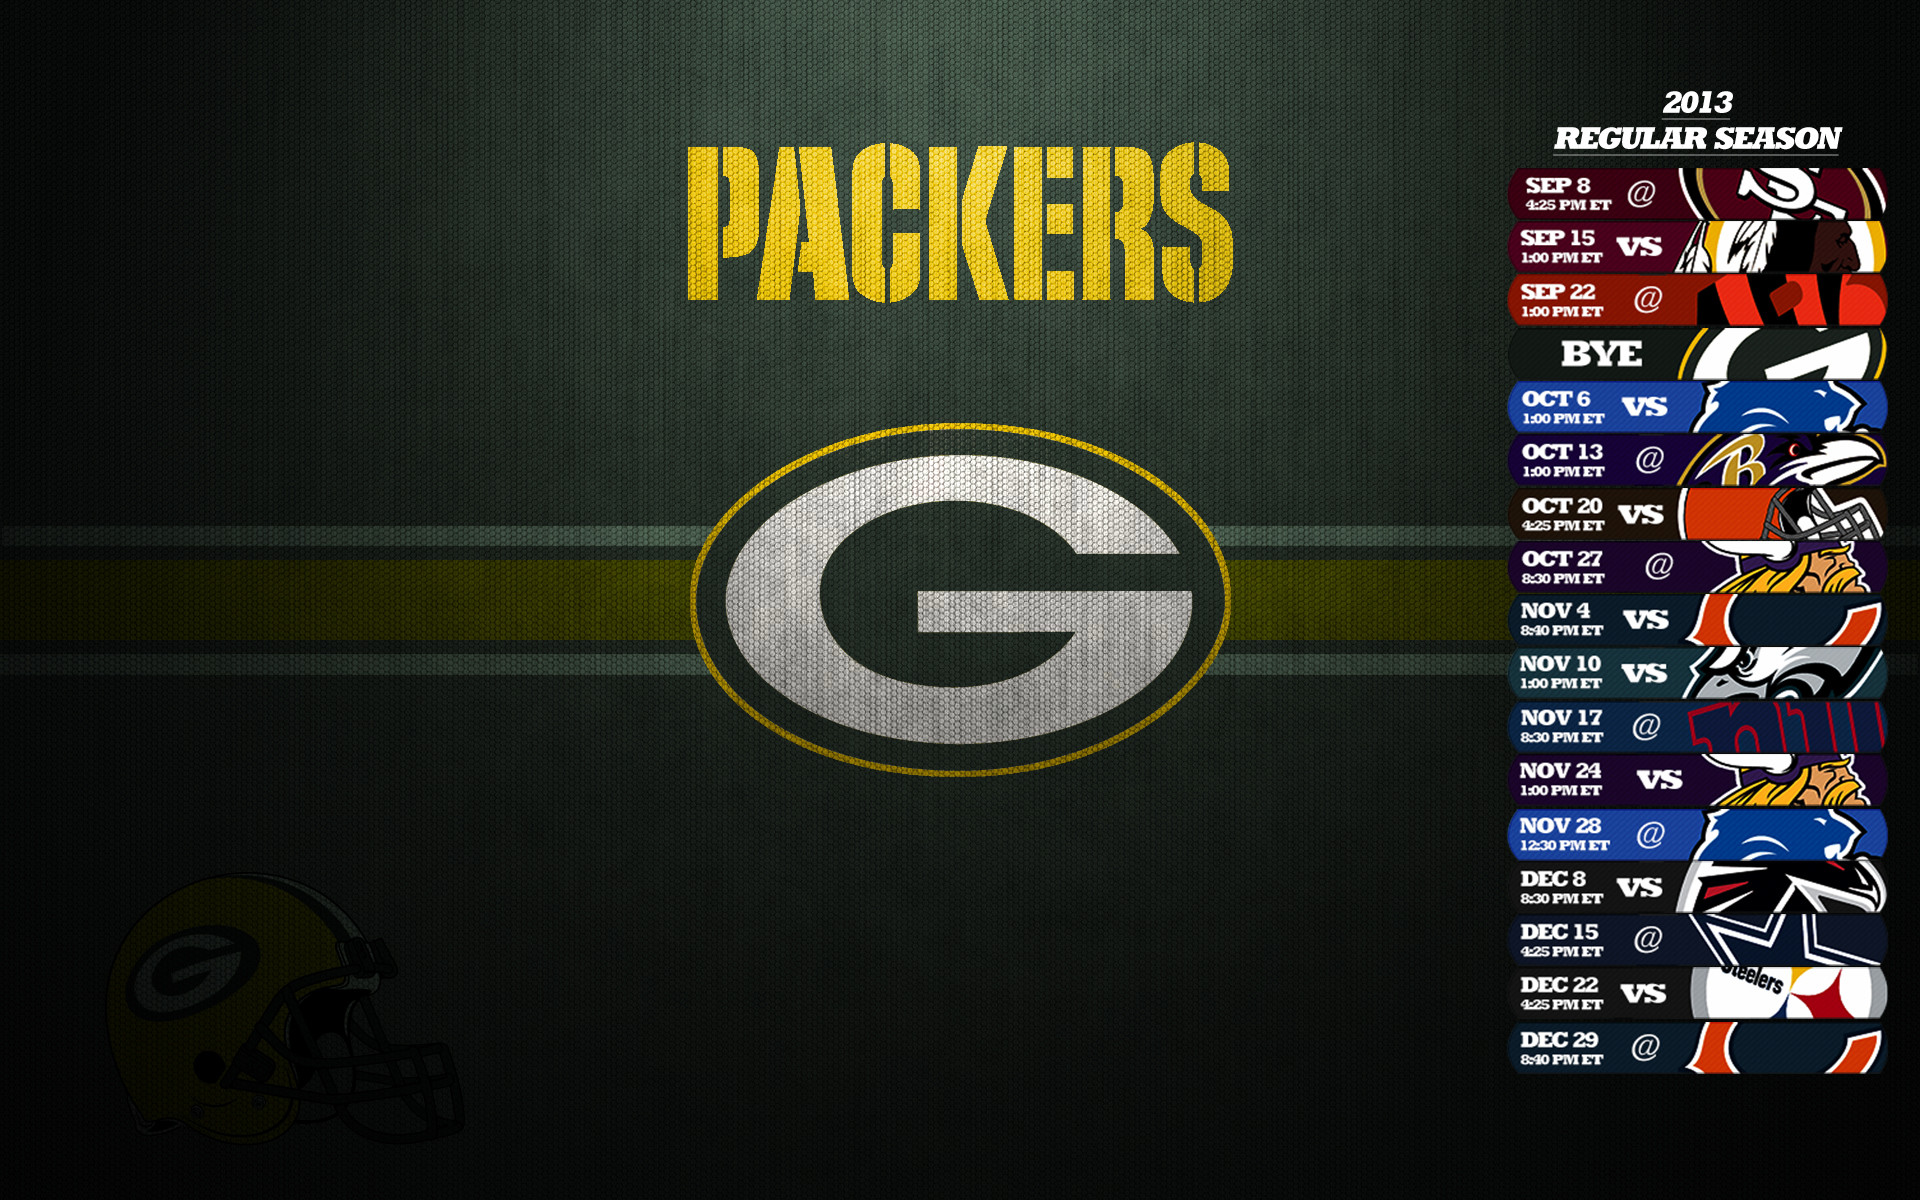 Green Bay Packers Schedule 2013 Wallpaper – Green Bay Packers .